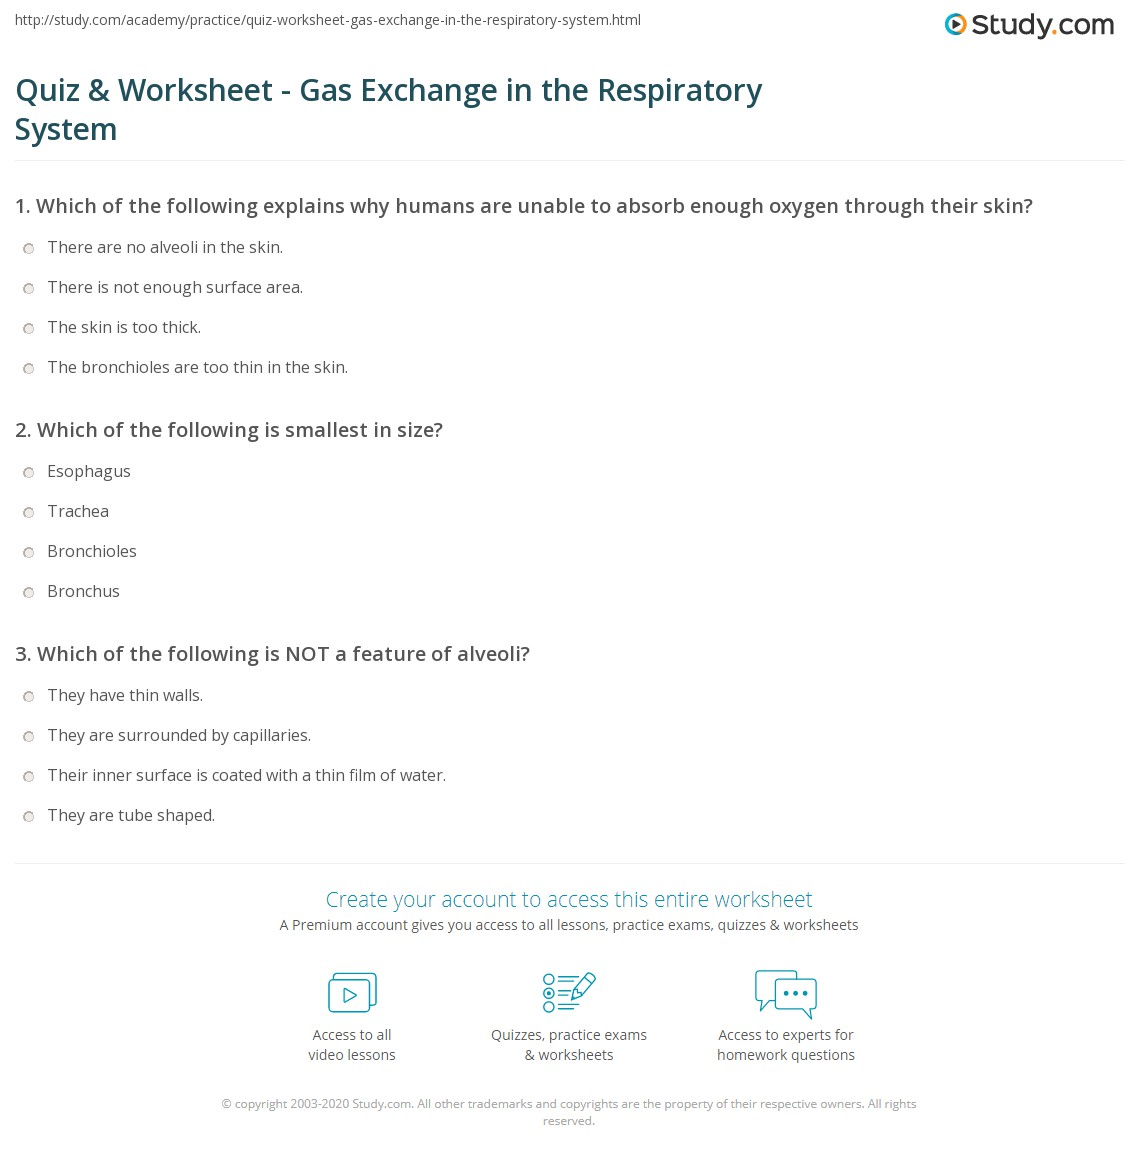 Worksheets Respiratory System Worksheets quiz worksheet gas exchange in the respiratory system study com print human worksheet